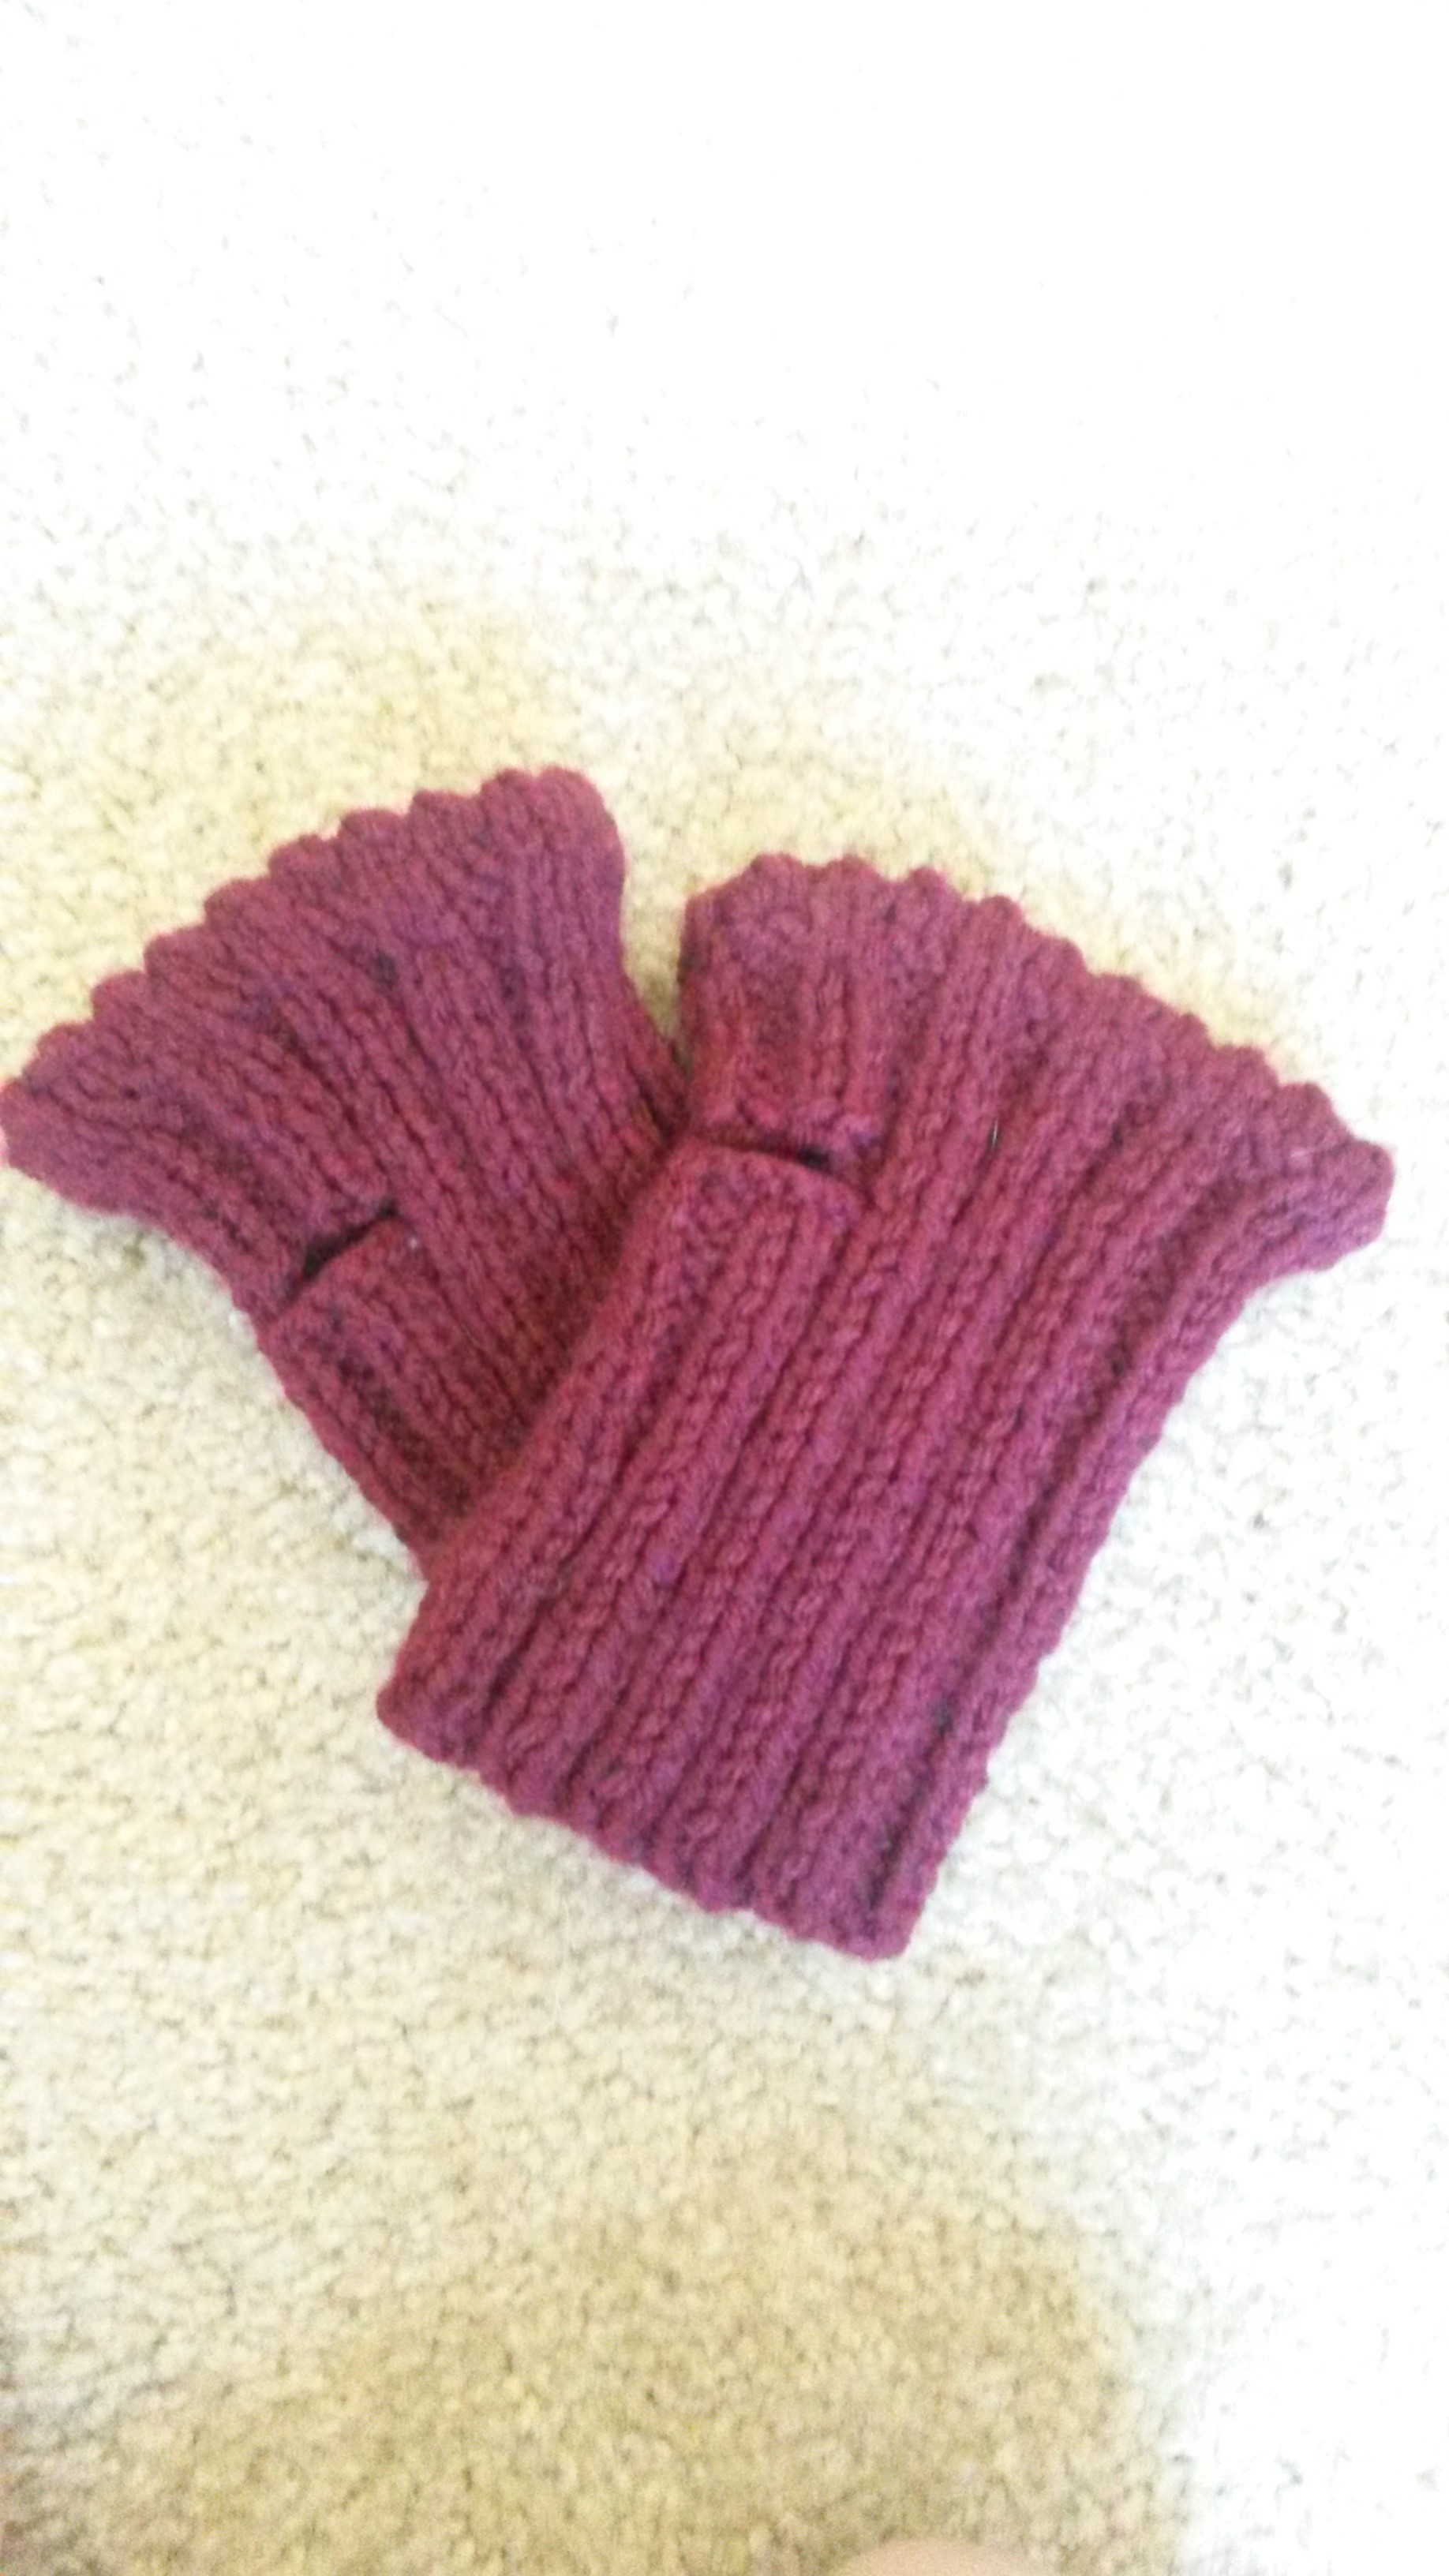 Fingerless Gloves Knitting Pattern Beginner : Short Fingerless Gloves Free knitting pattern - Crafty Tutorials